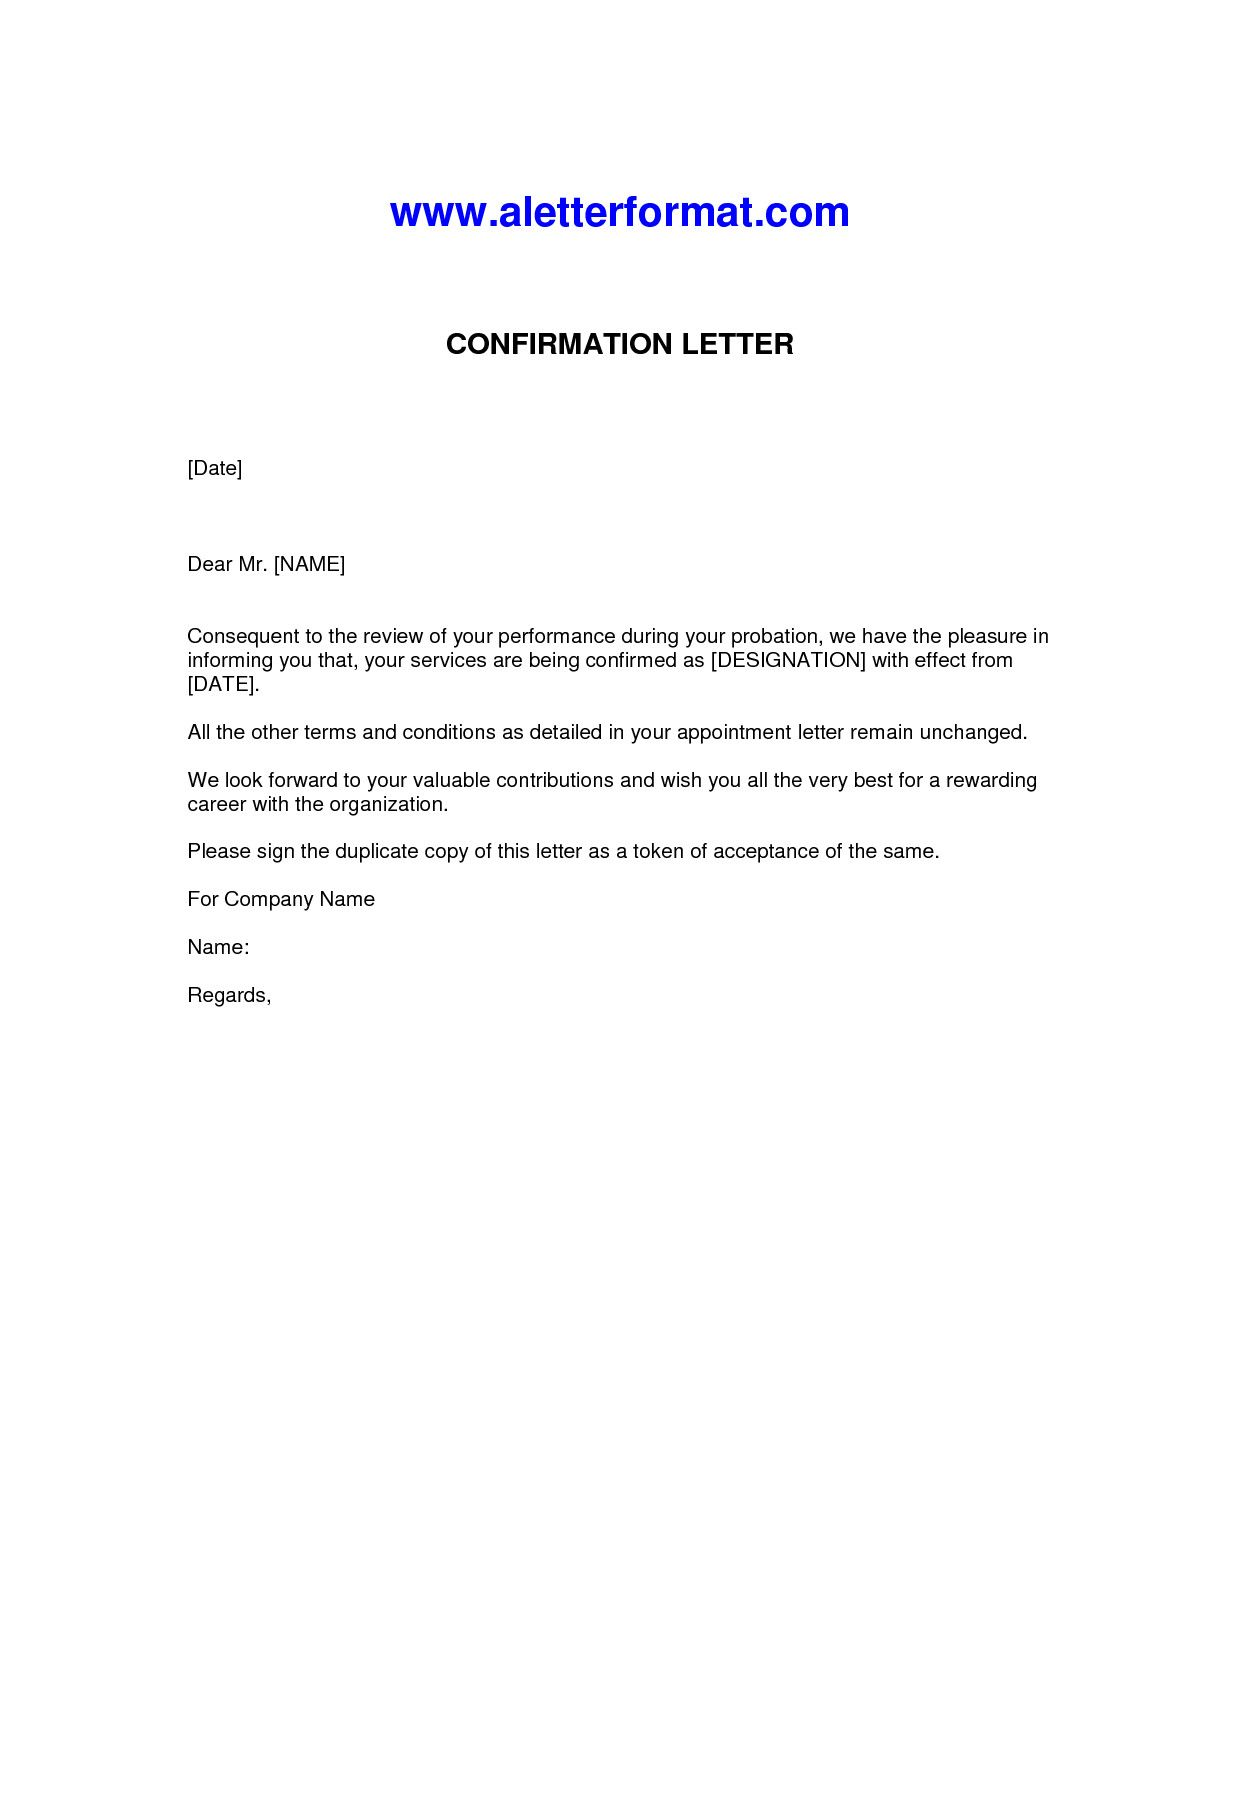 Employment Confirmation Letter Template Letter Confirmation Employment Confirmation Letter Lettering Letter Of Employment